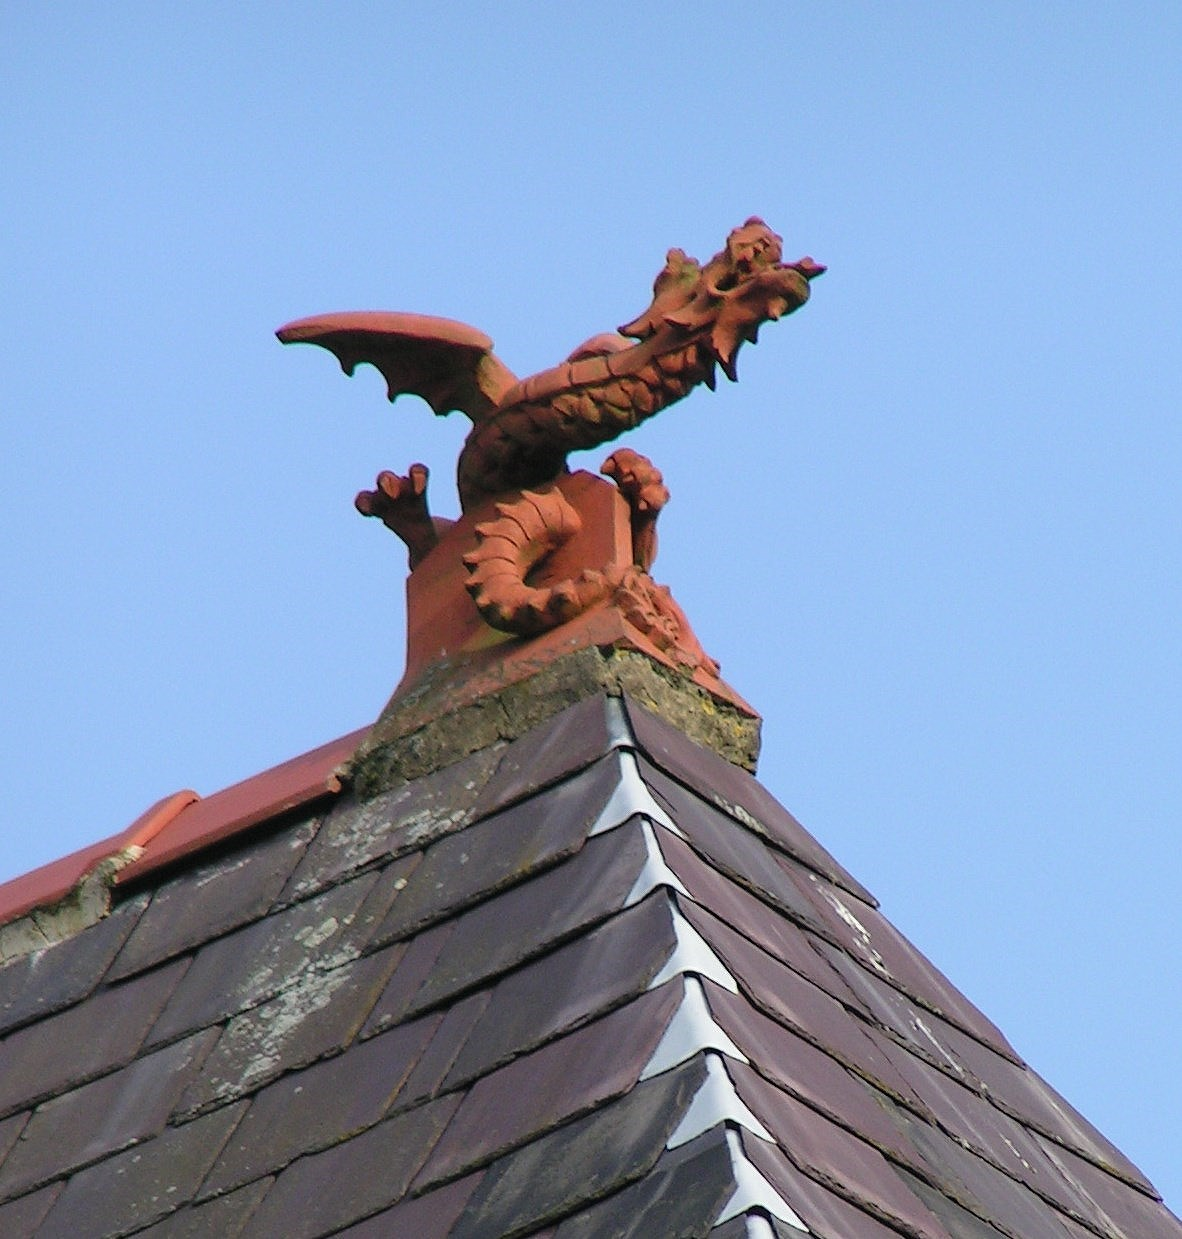 Dragon finial on a Victorian house in Ilkley, Yorkshire, c. 1890